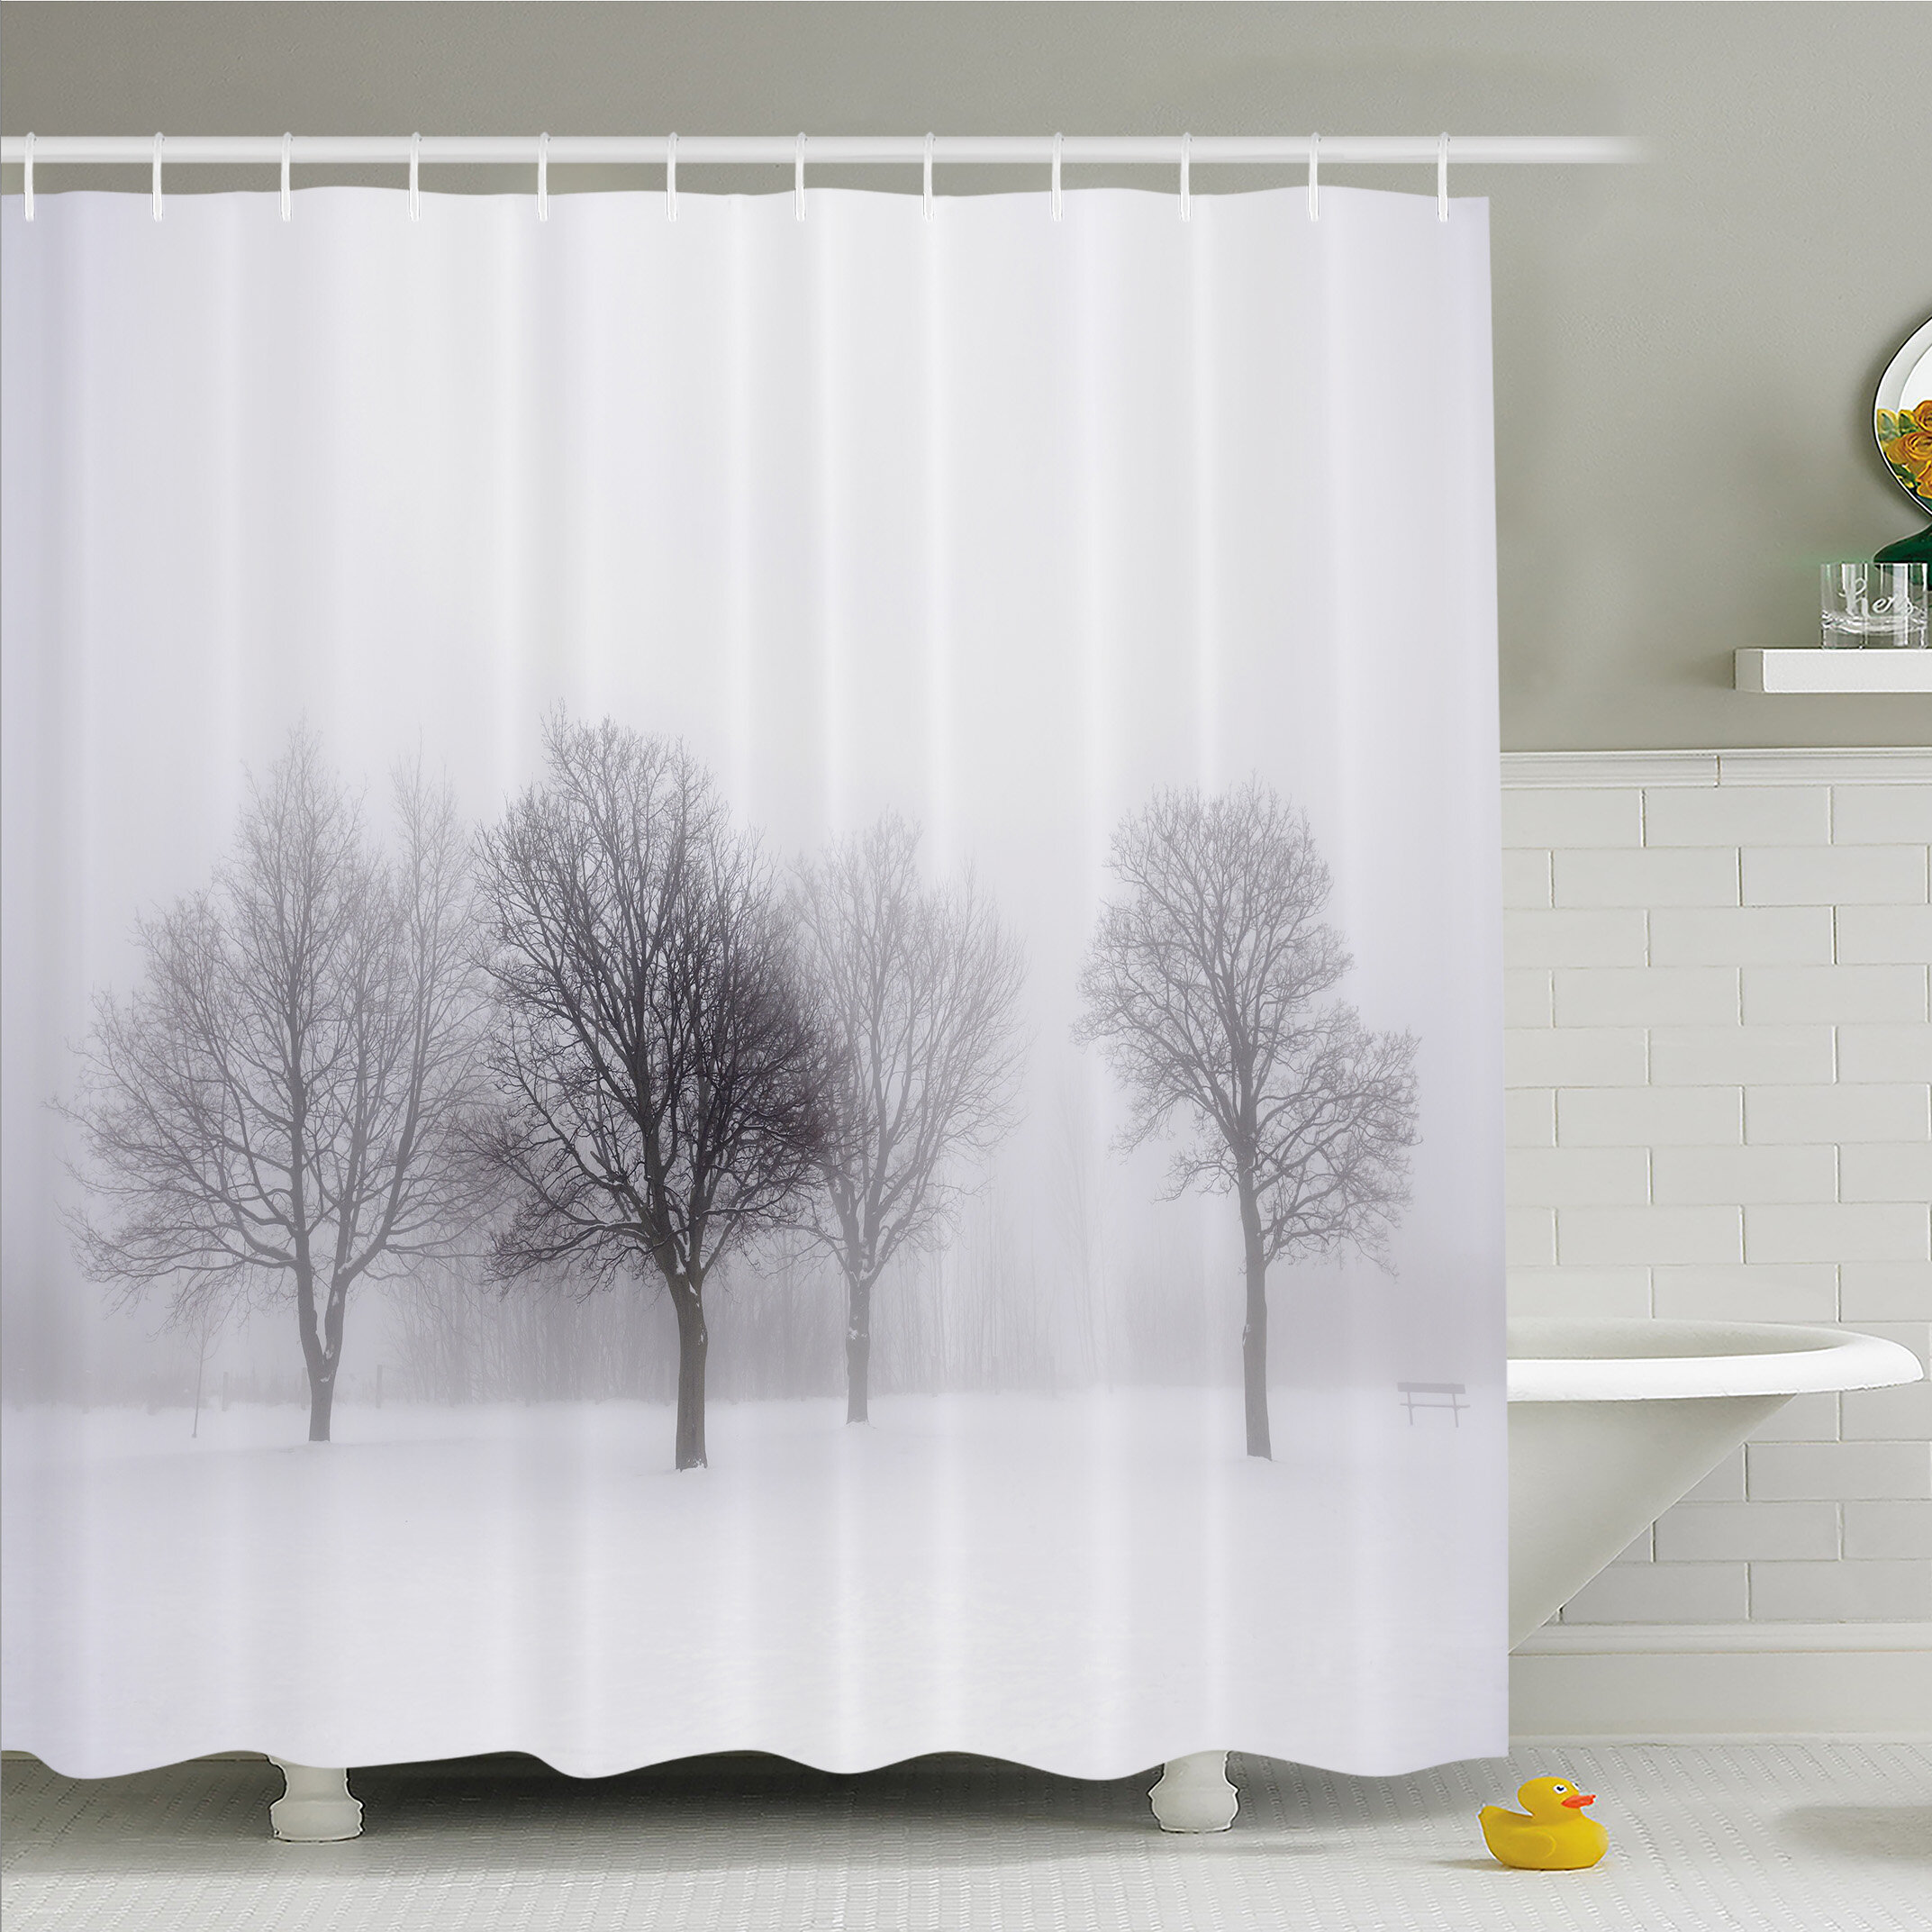 your curtain innaren curtains to texture shower mvhtidx stripe goodworksfurniture add bathroom white length